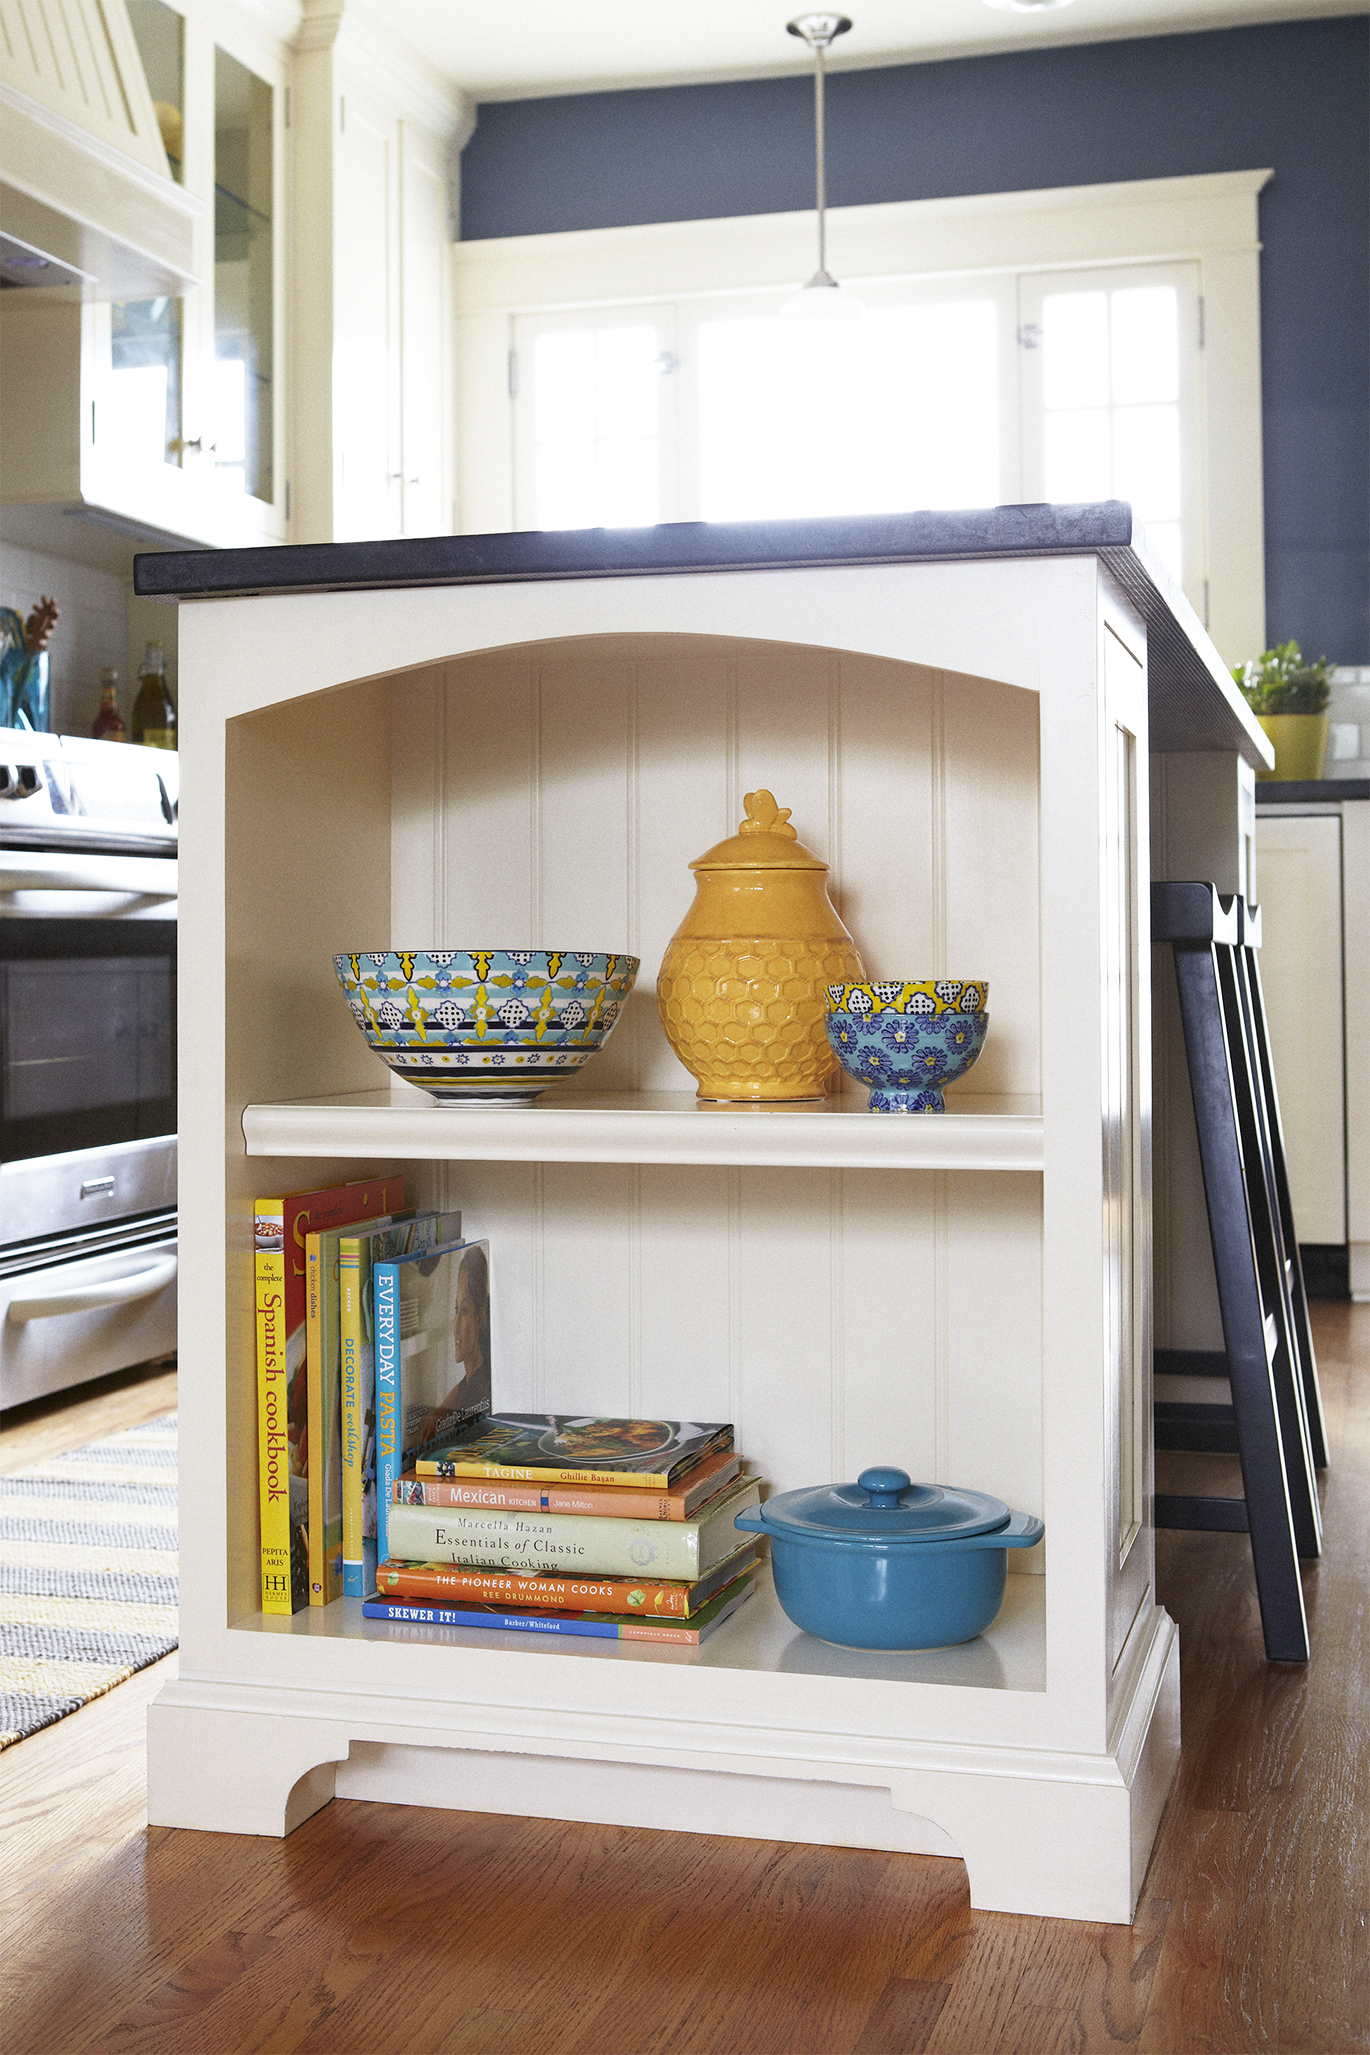 Organize shelf in kitchen with yellow pots and cookbooks